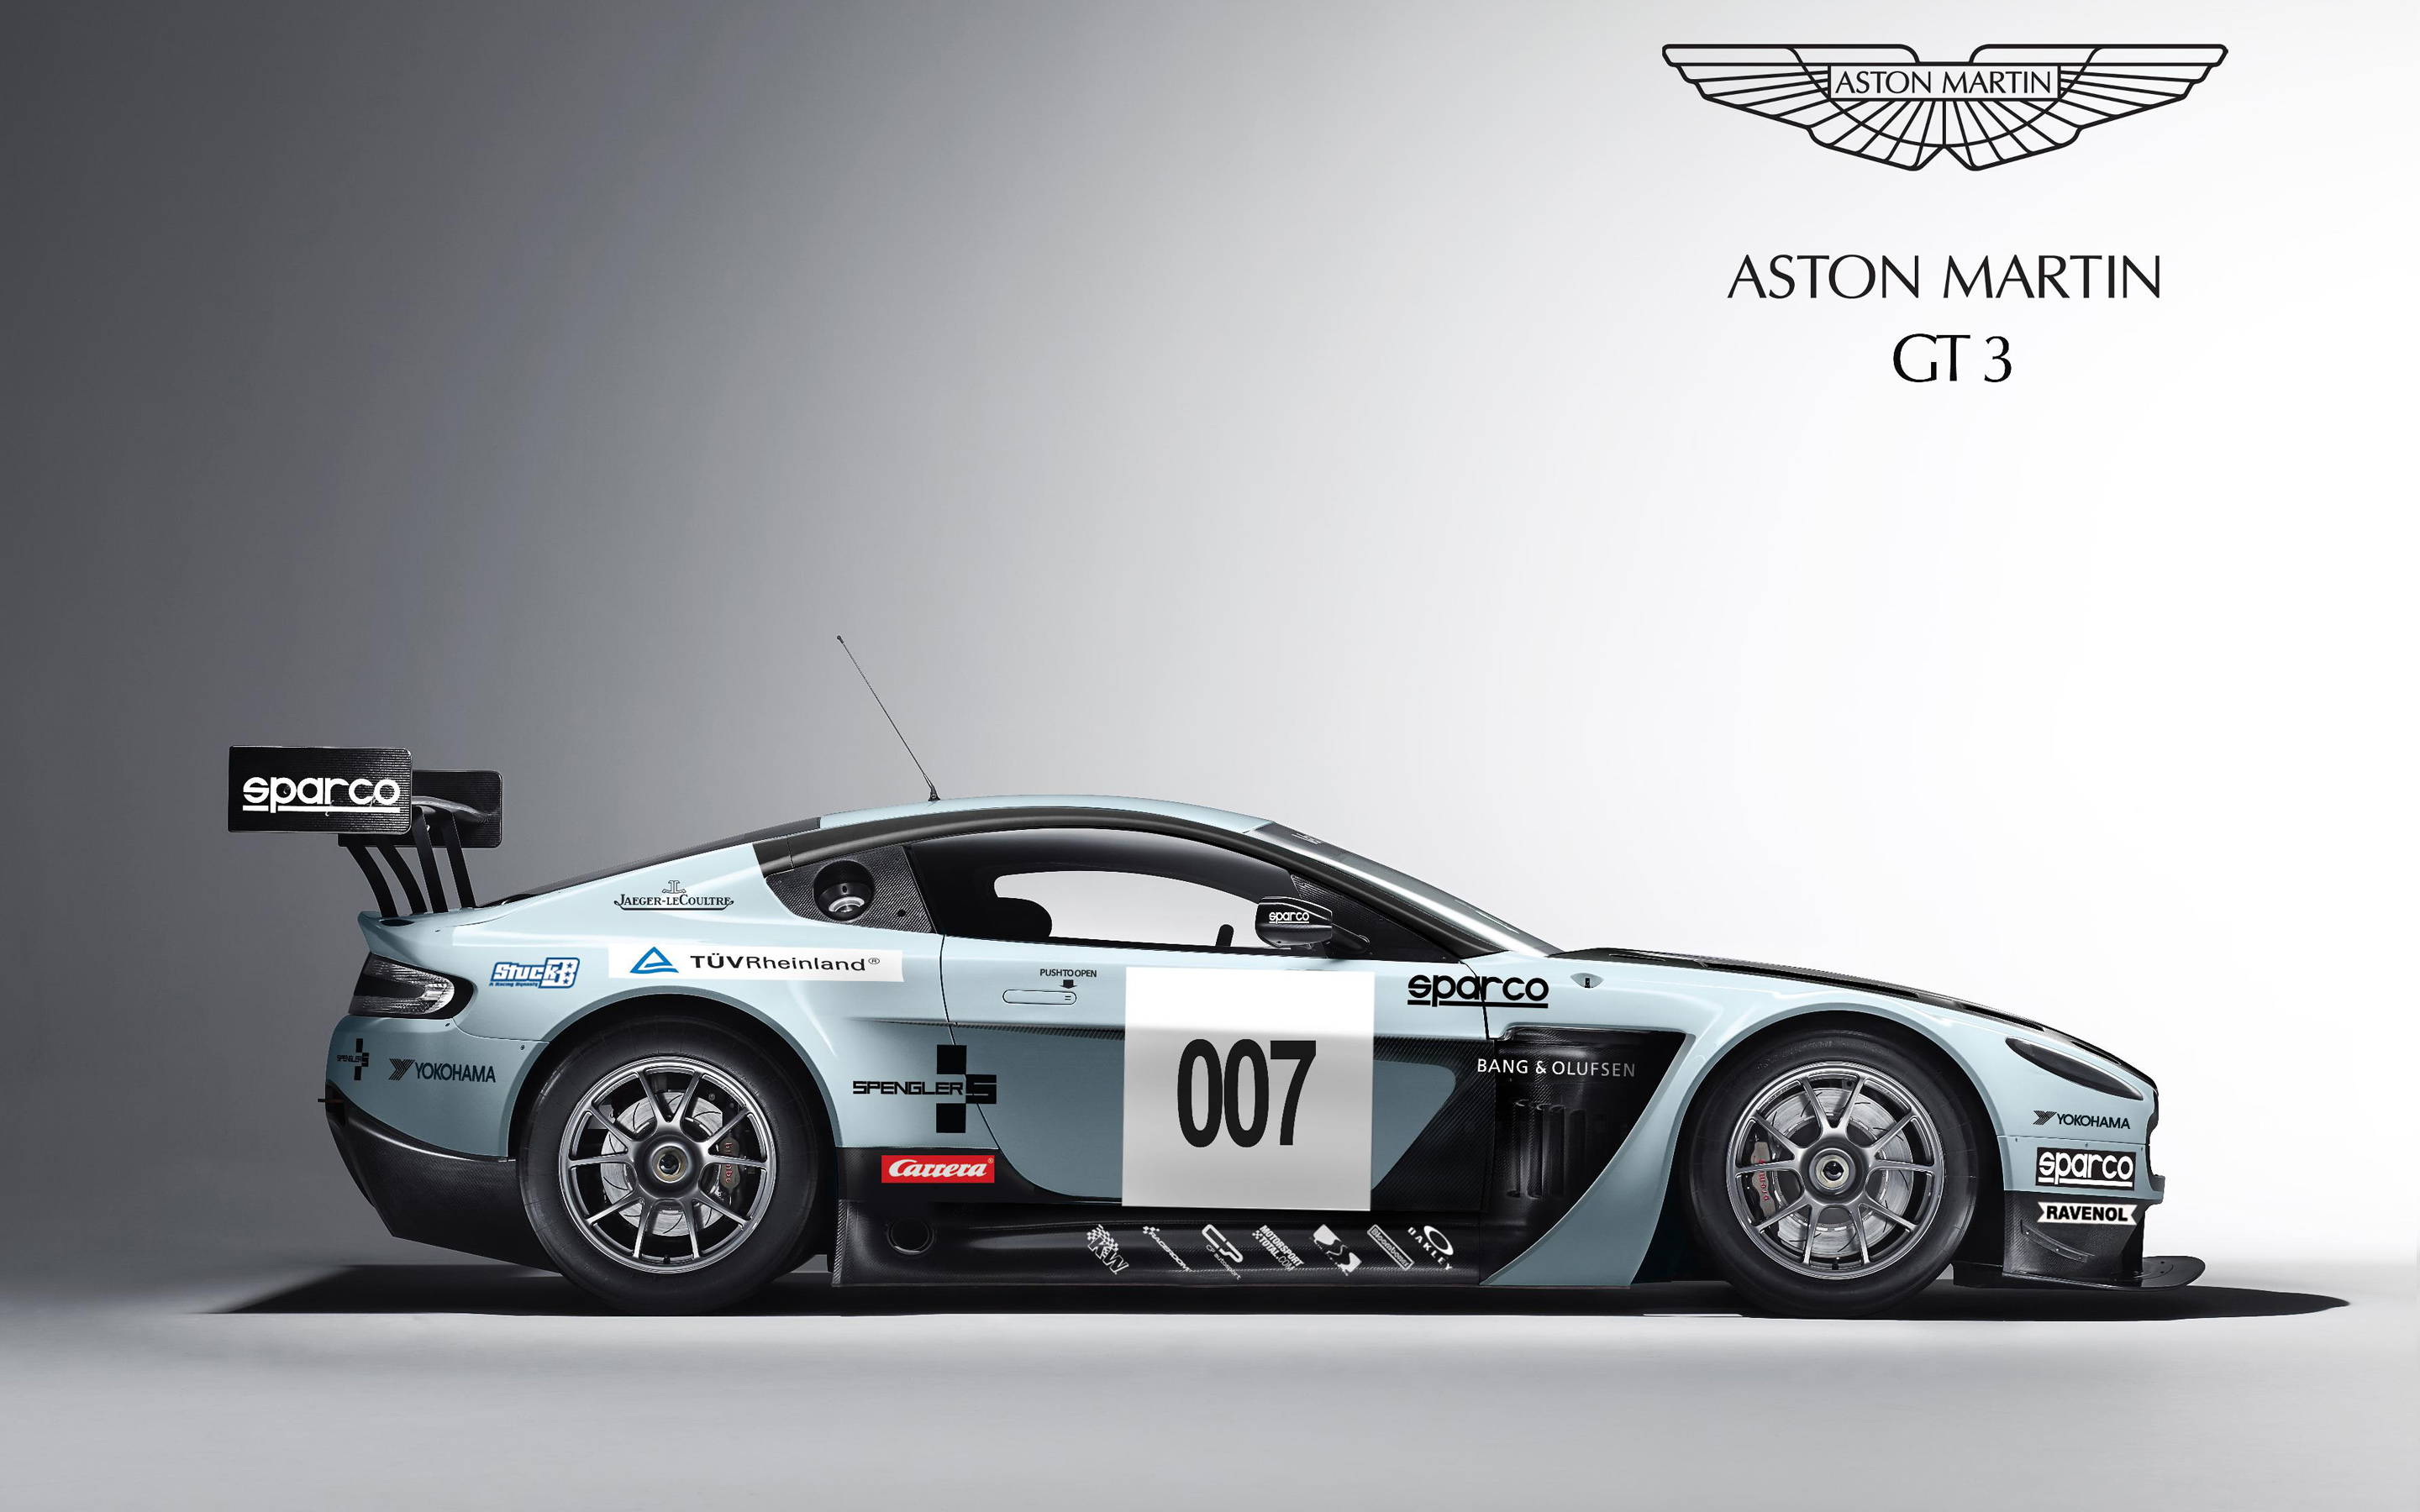 Aston Martin V12 Vantage GT3 Wallpapers HD Wallpapers 2880x1800